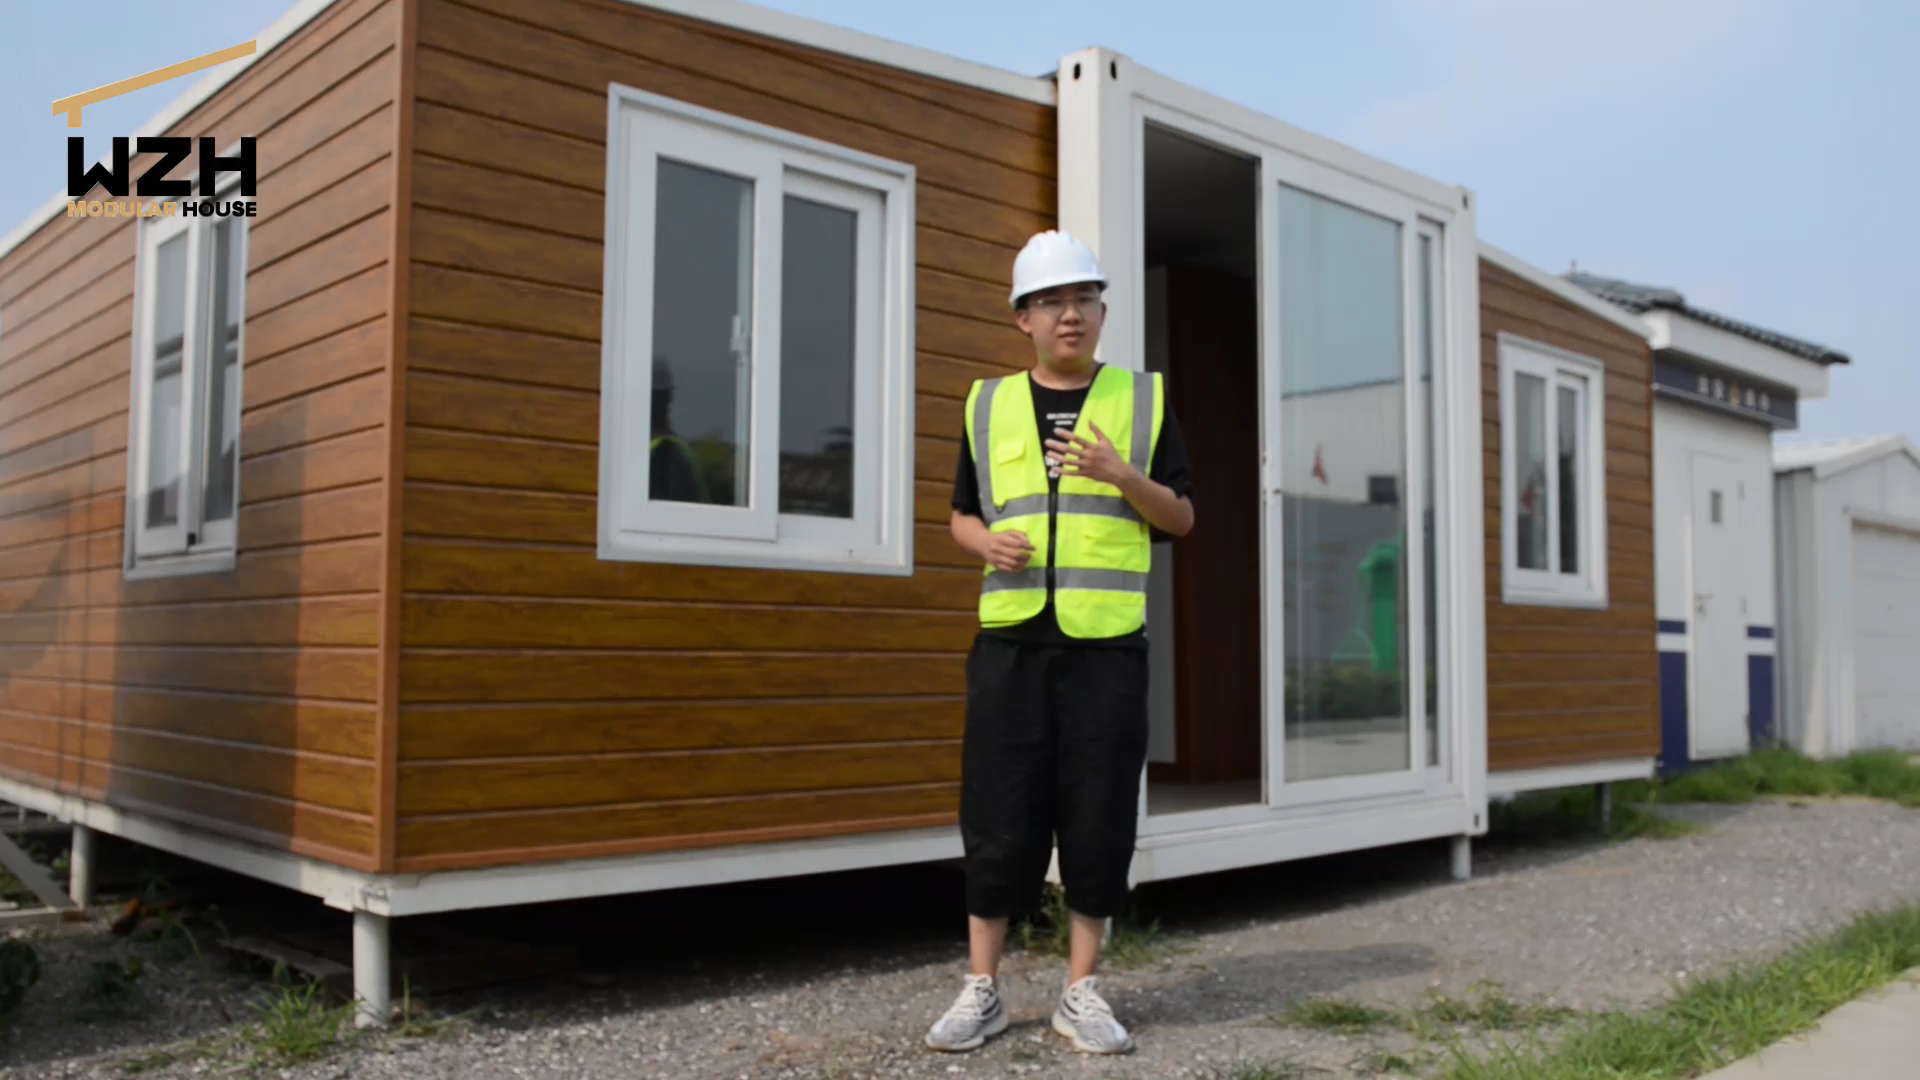 Cheap 20 40 ft luxury house cabine prefab folding modular homes portable expandable container house